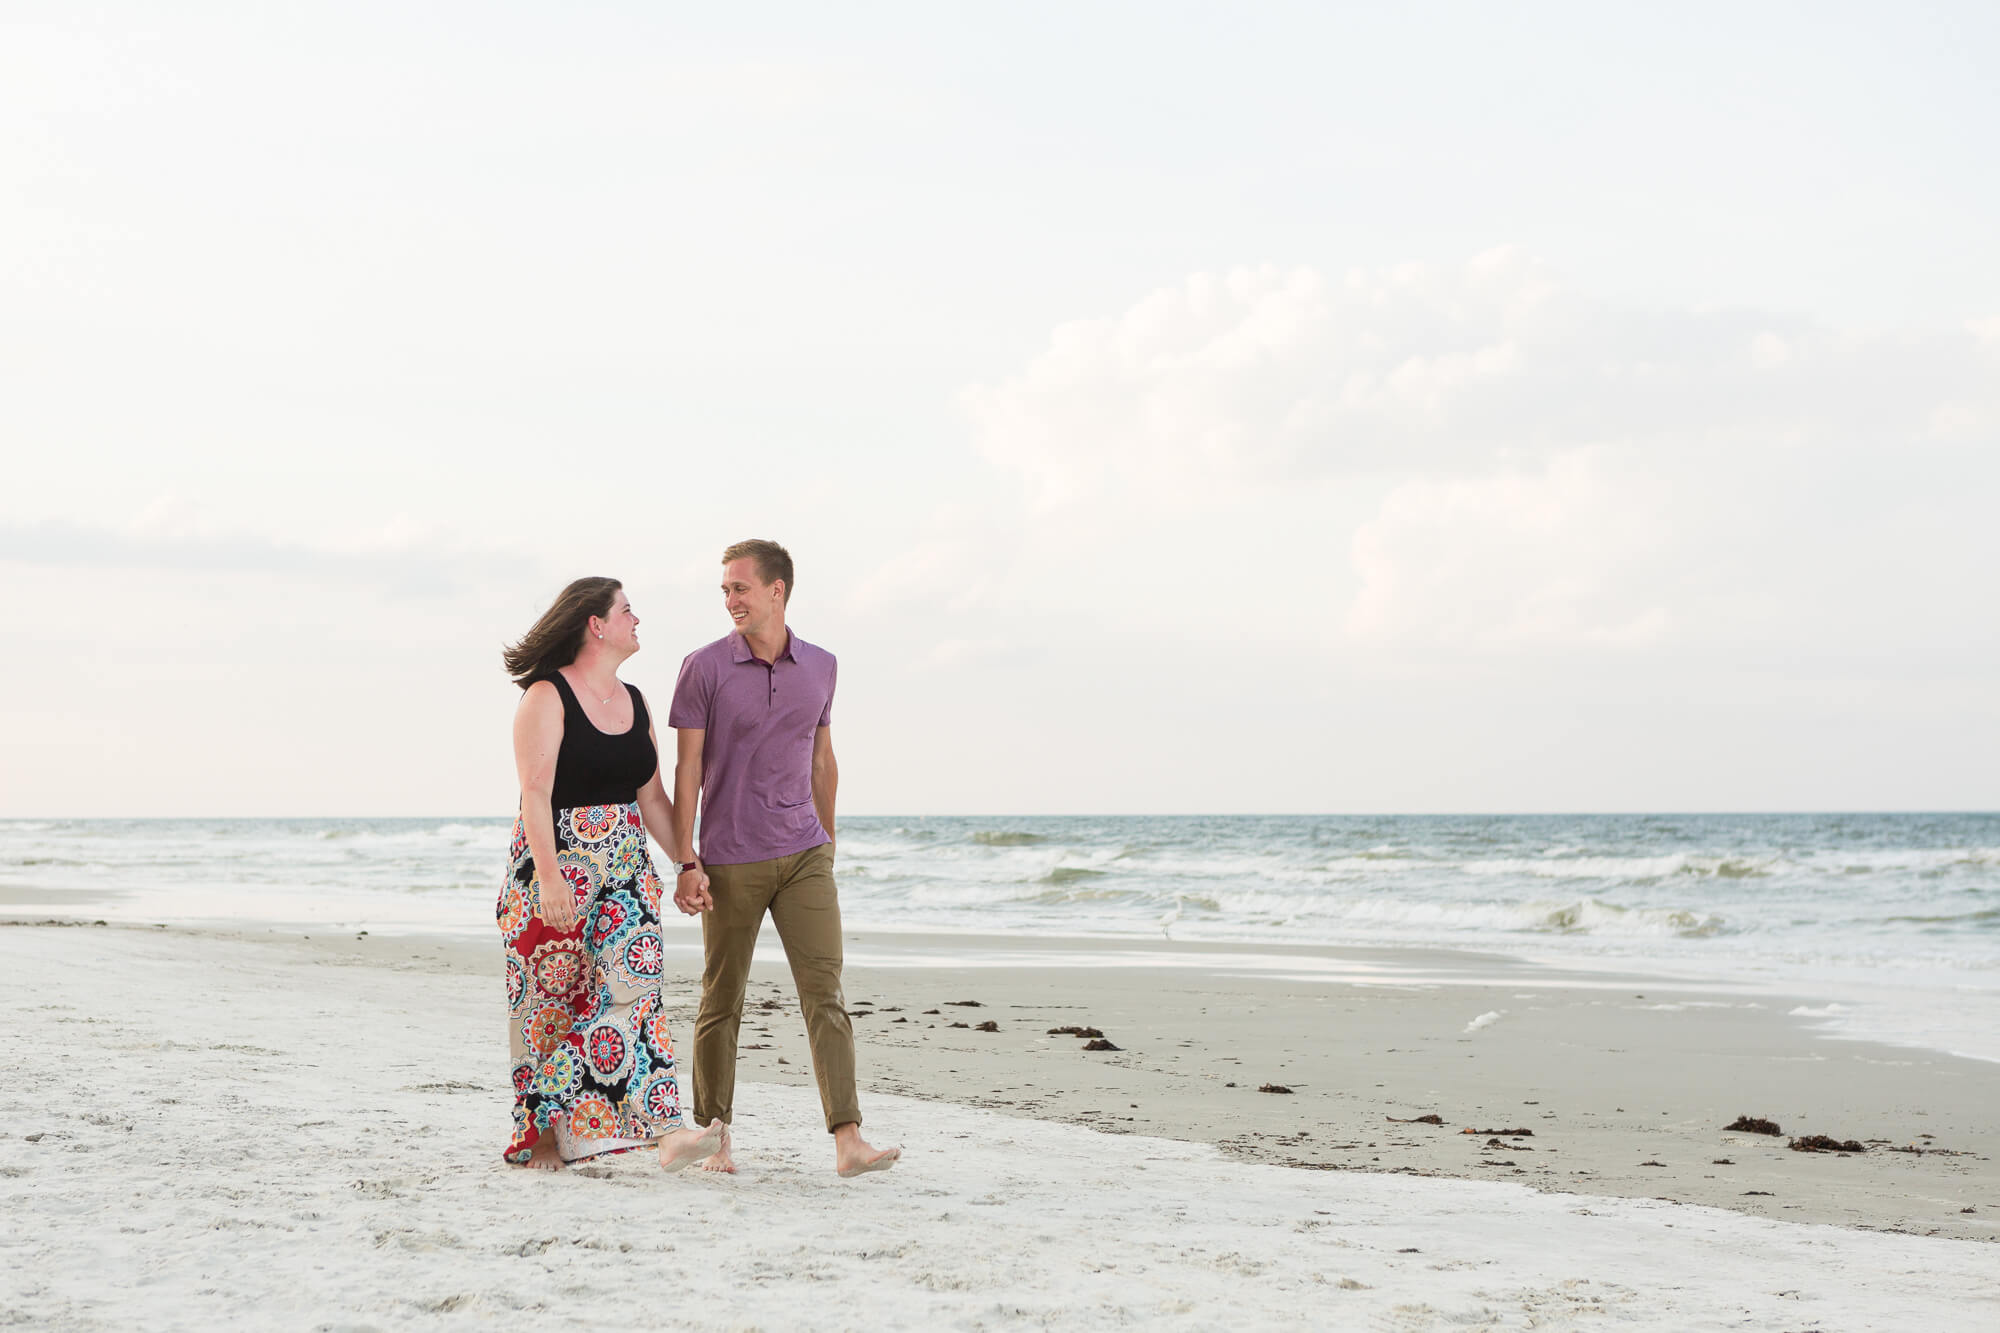 new-smyrna-beach-proposal-11.jpg